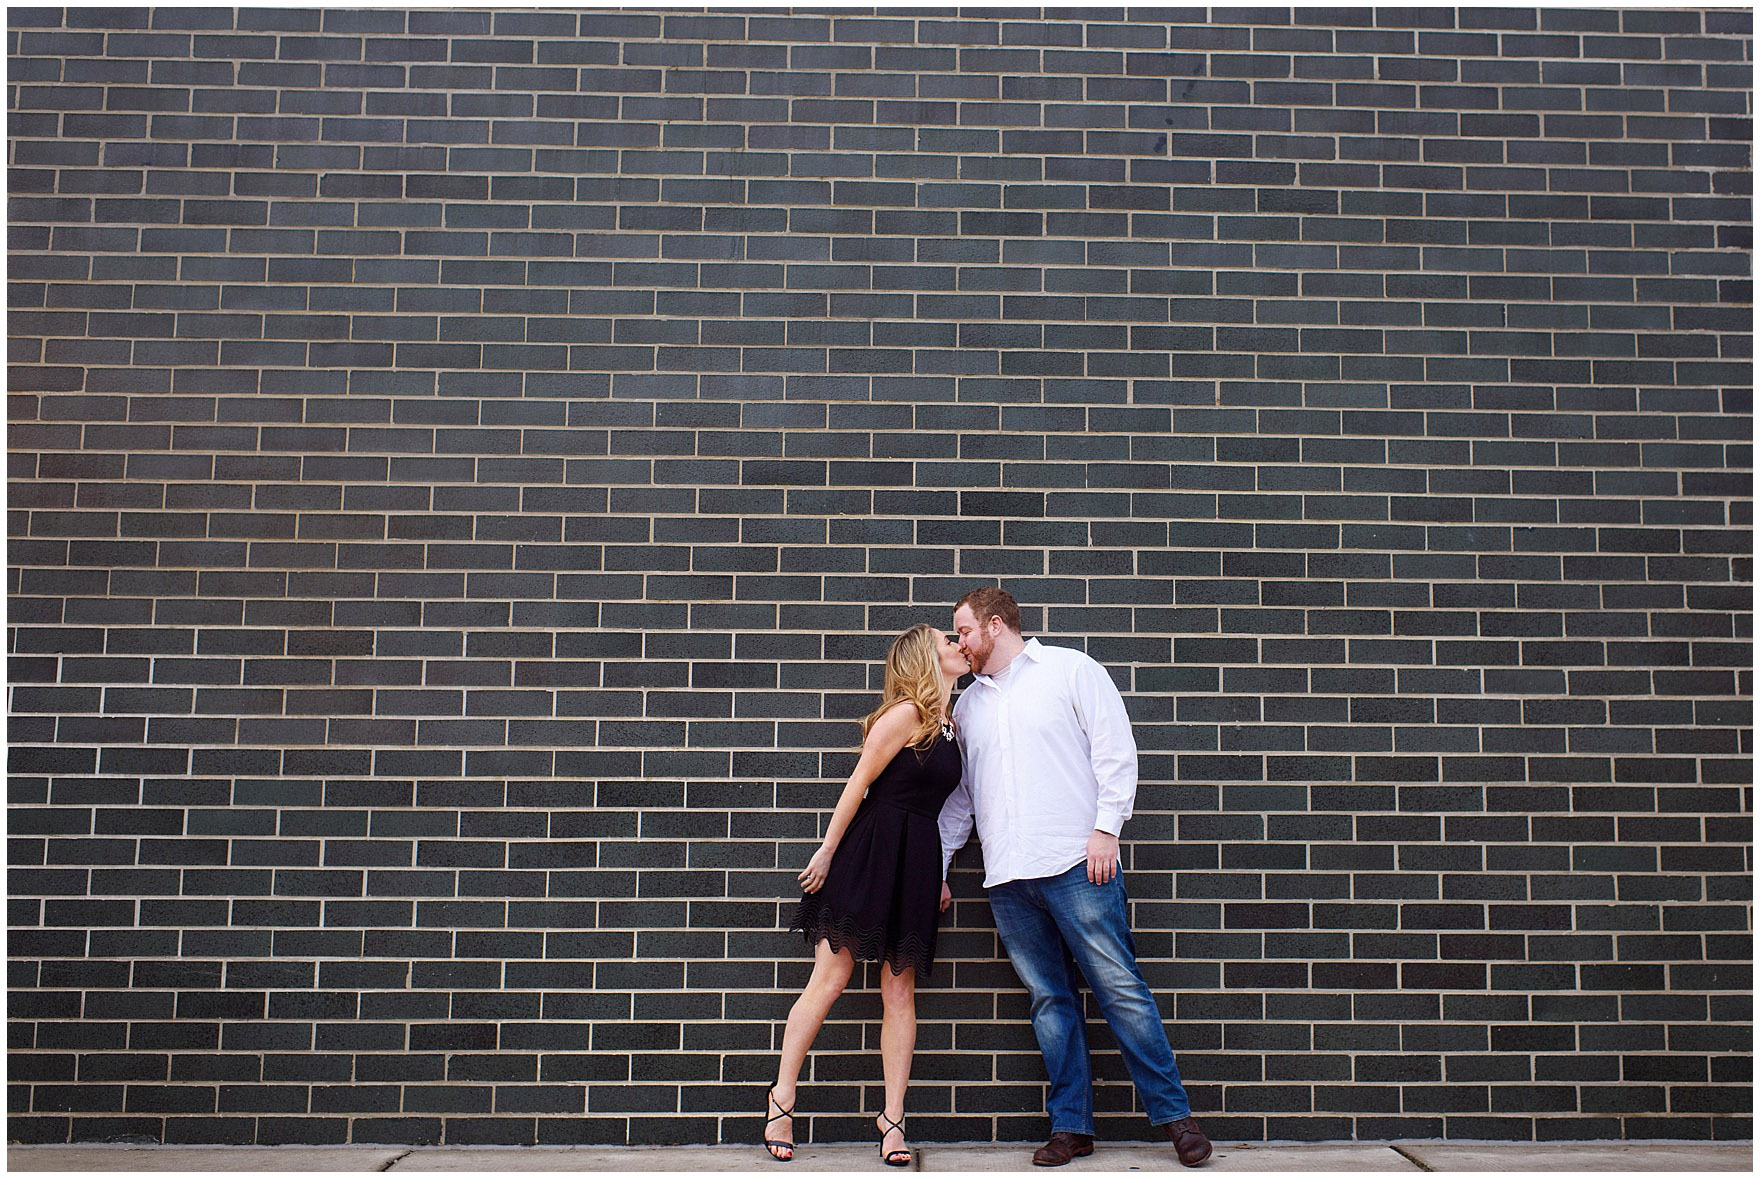 A couple kisses in front of a brick wall during a downtown Chicago city engagement photography session.